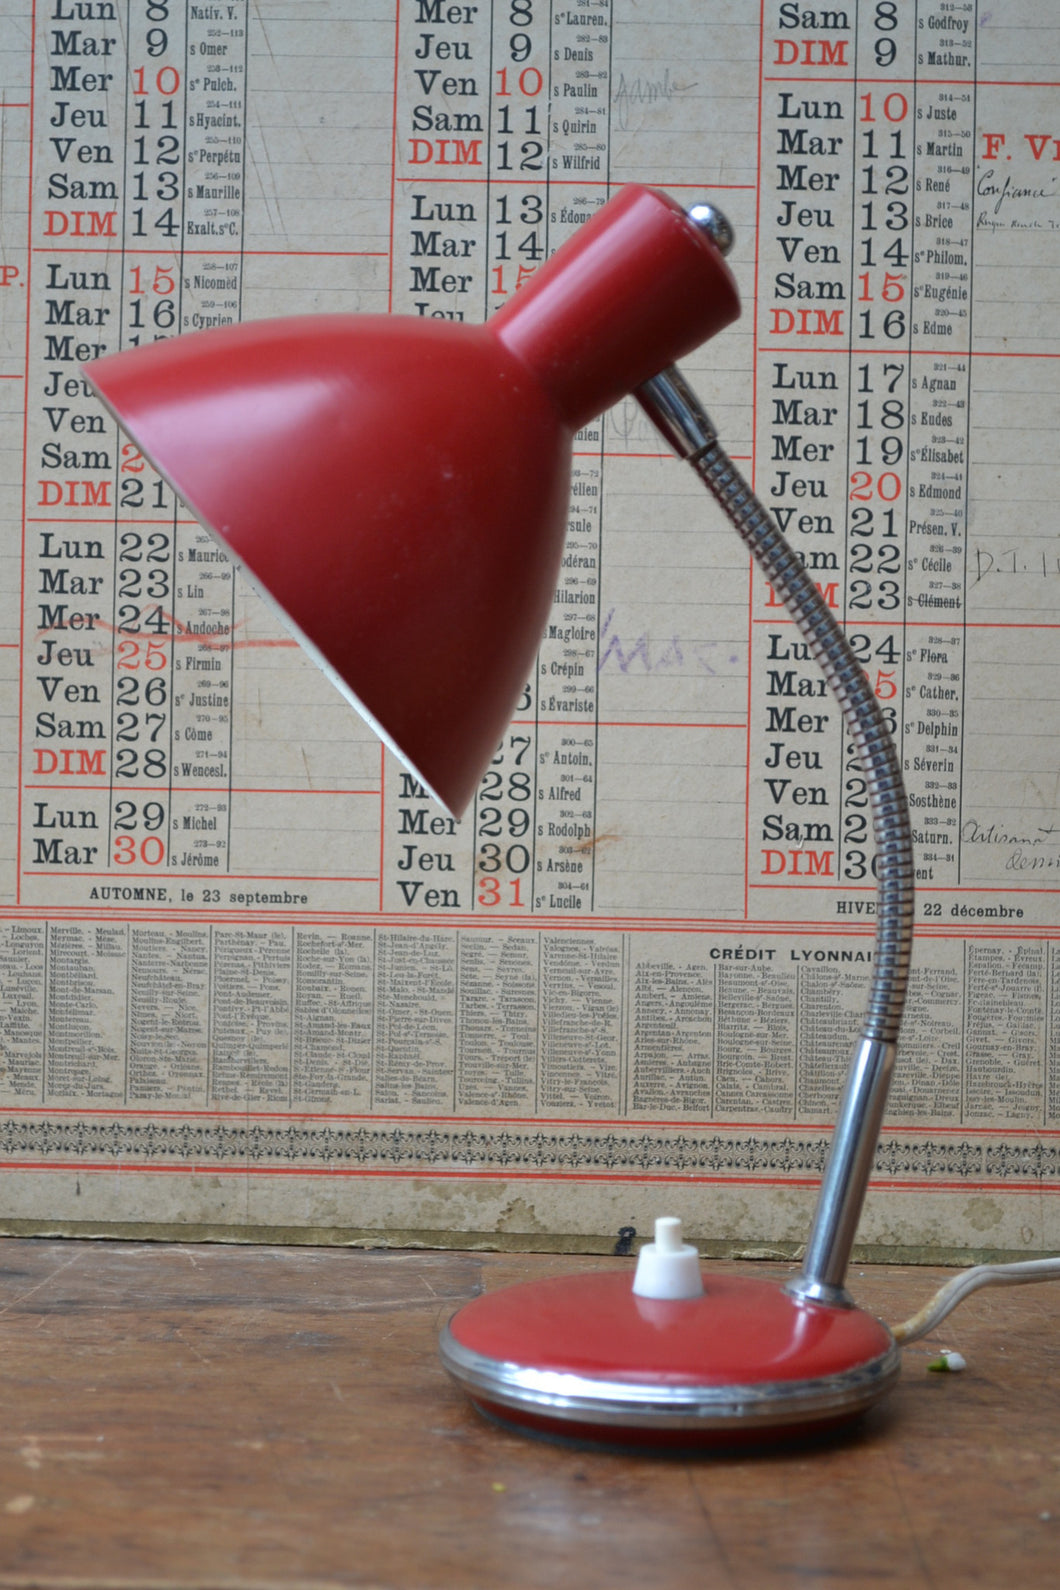 Vintage French Desk Lamp - SOLD OUT